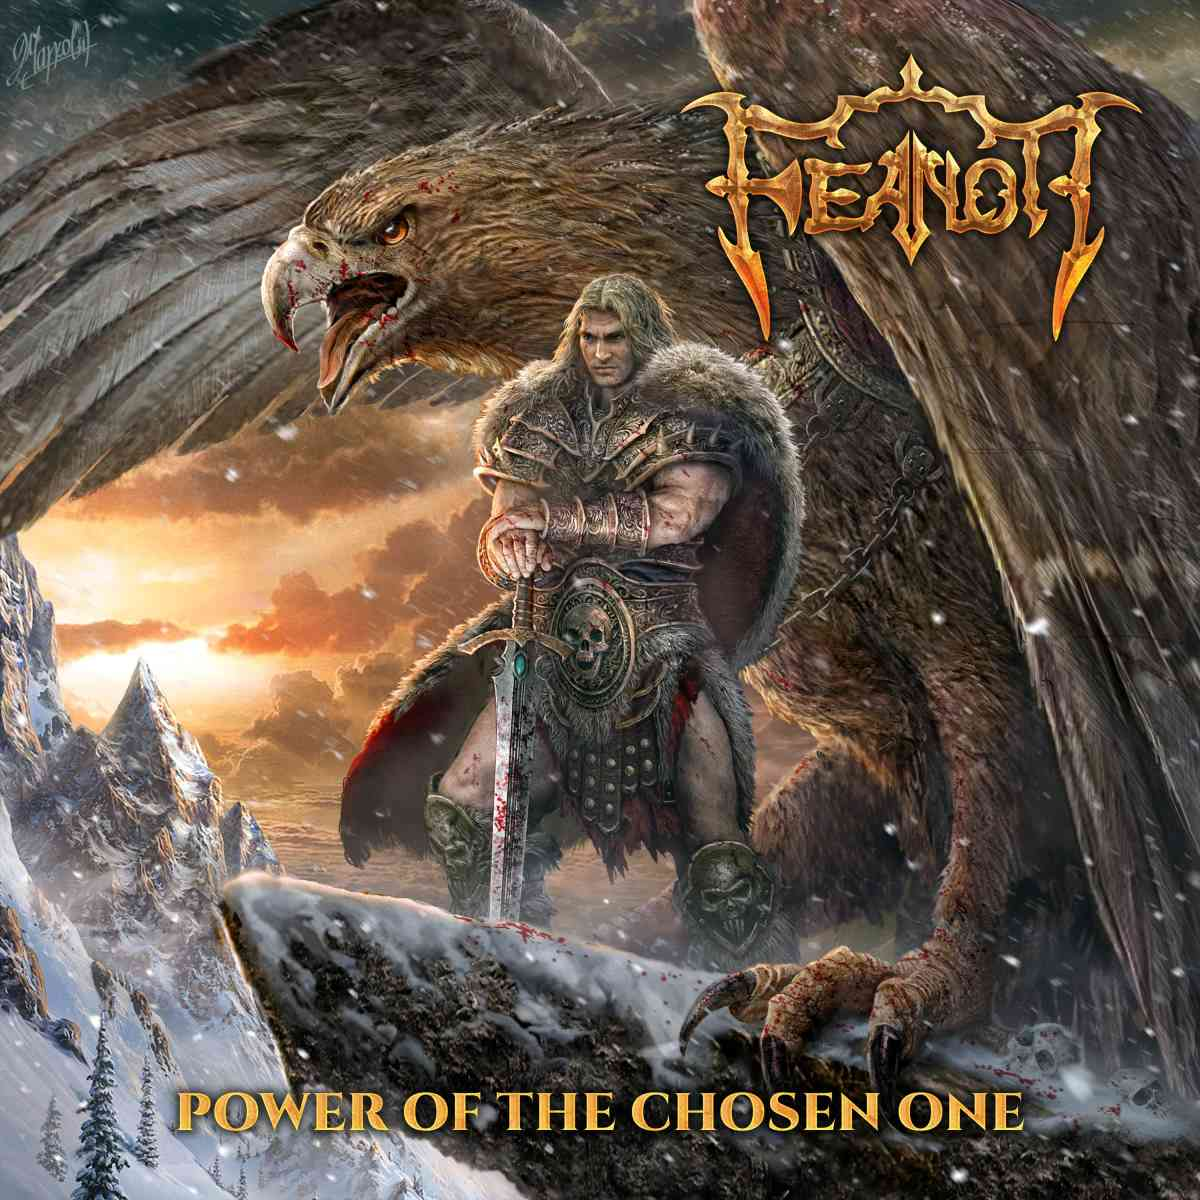 feanor - power of the chosen one - album cover